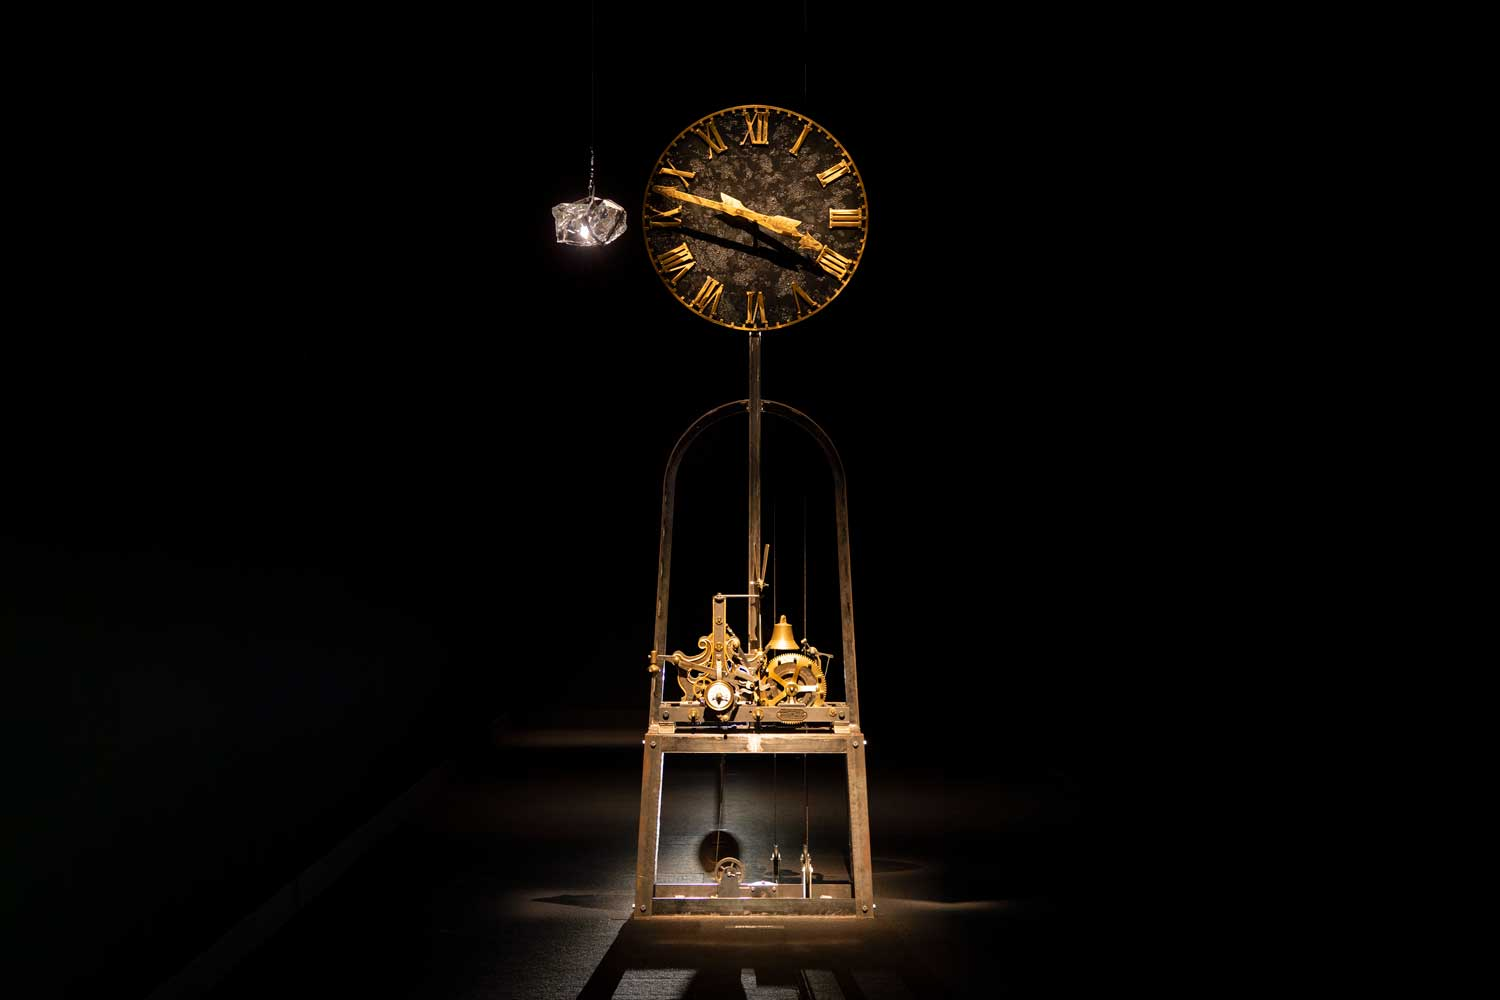 The 'Backward Clock' by Hiroshi Sugimoto at Cartier's exhibition in Tokyo